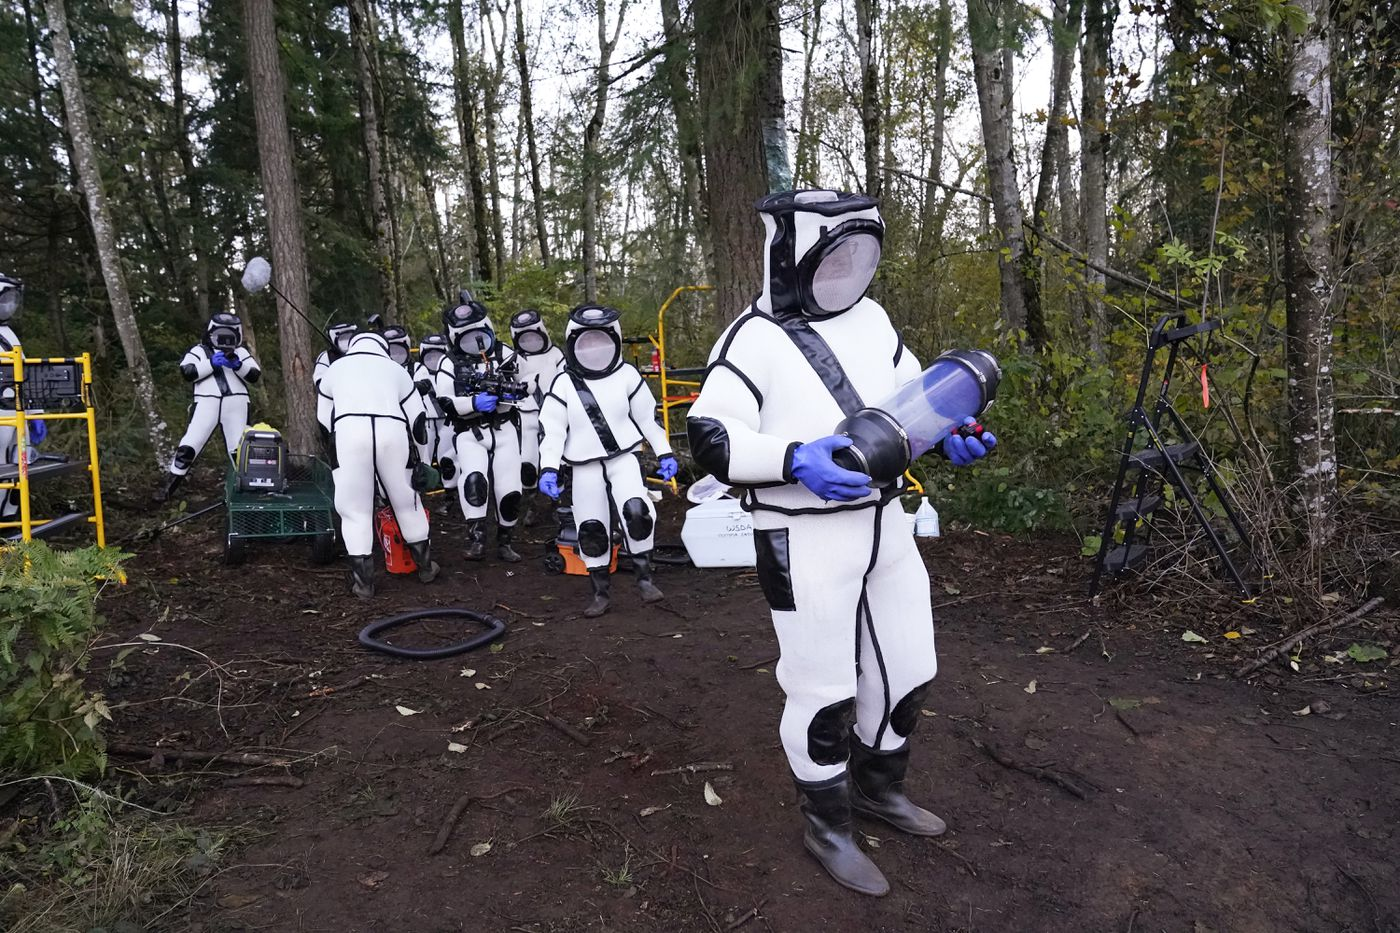 Sven Spichiger, Washington State Department of Agriculture managing entomologist, walks with a canister of Asian giant hornets vacuumed from a nest in a tree behind him Saturday, Oct. 24, 2020, in Blaine, Wash. S (AP Photo/Elaine Thompson)